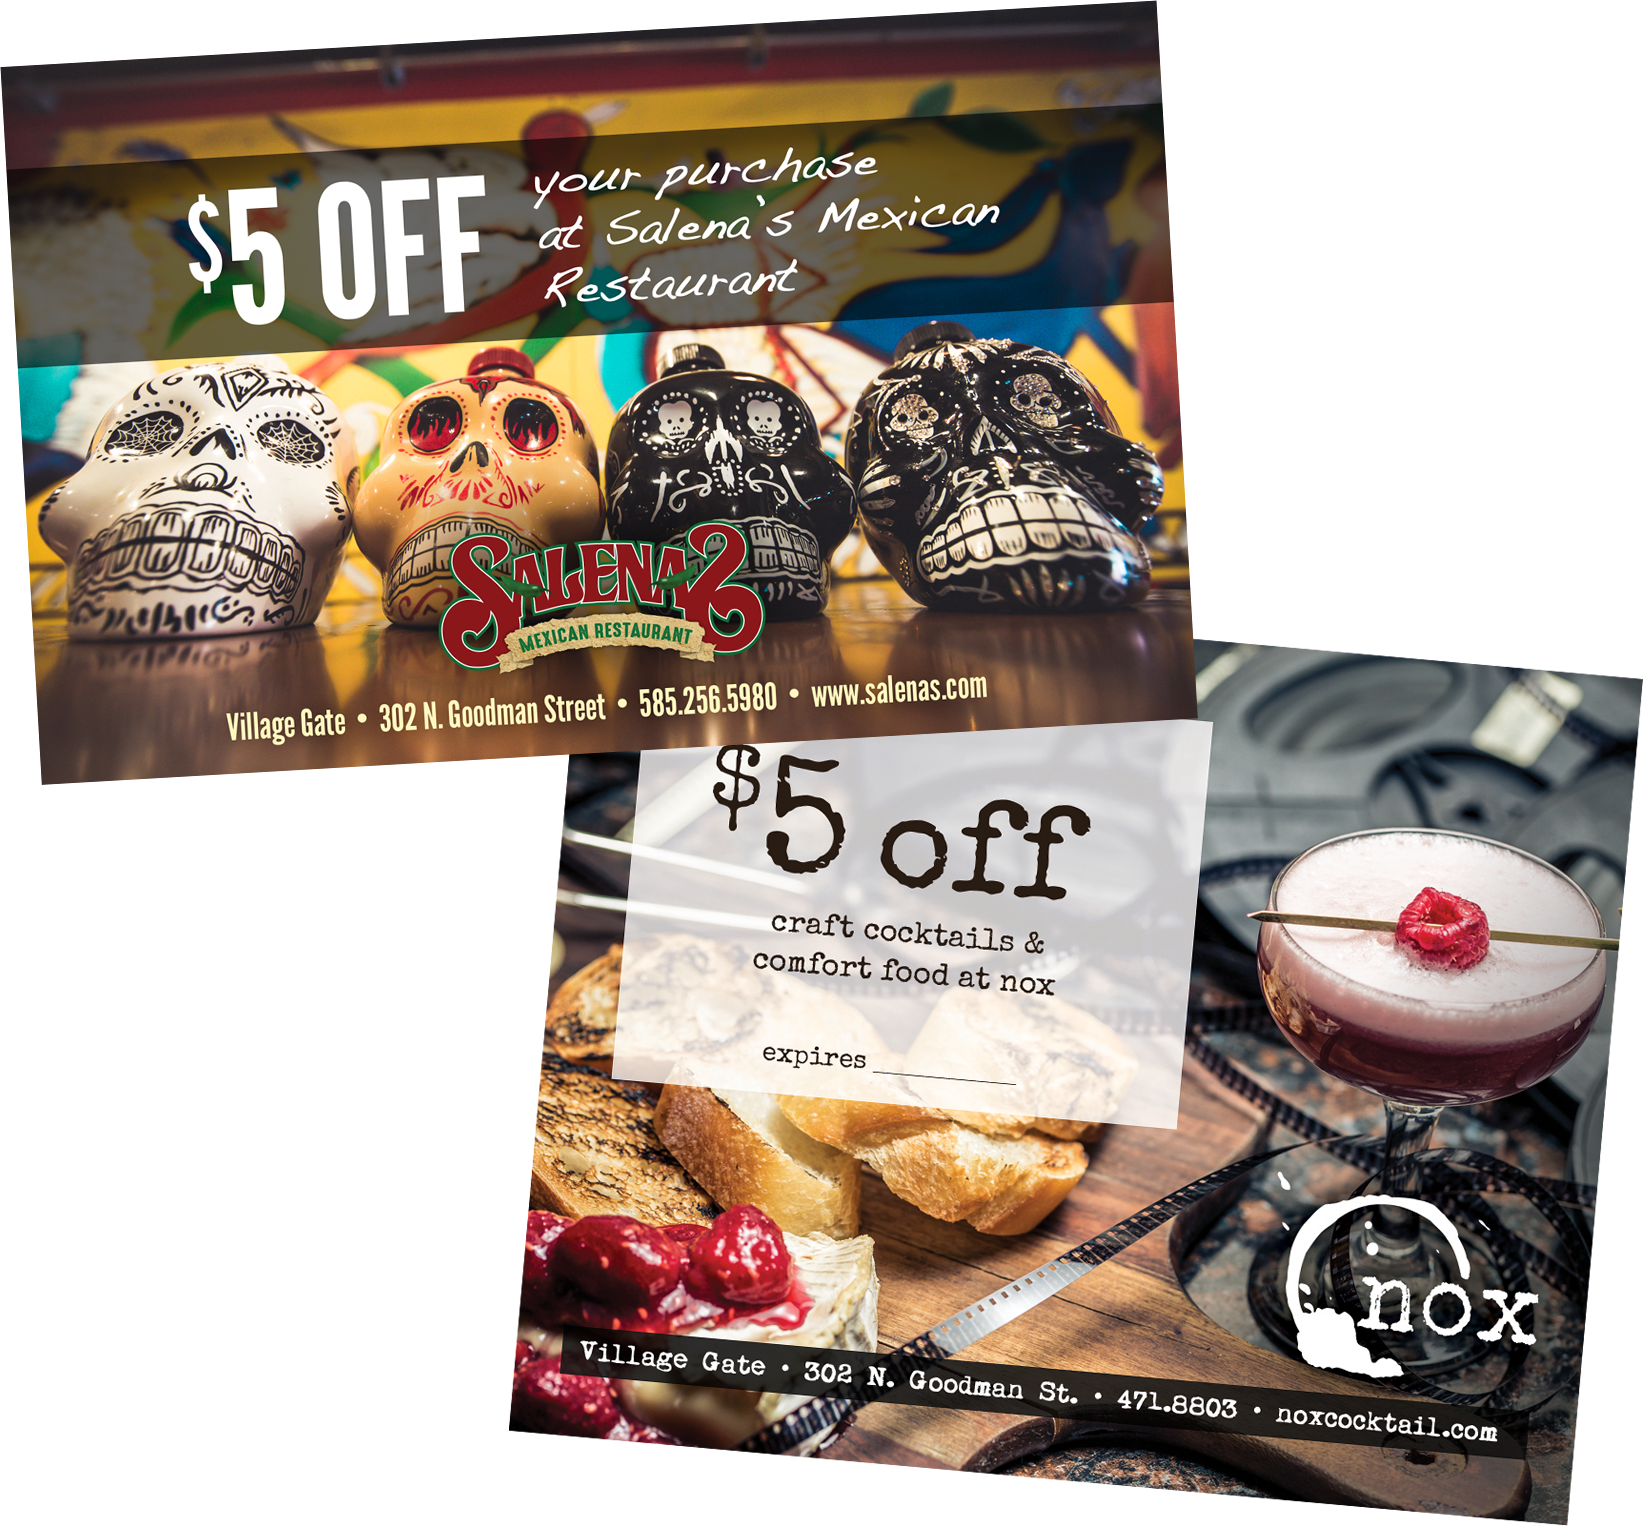 Coupon & Ad Design